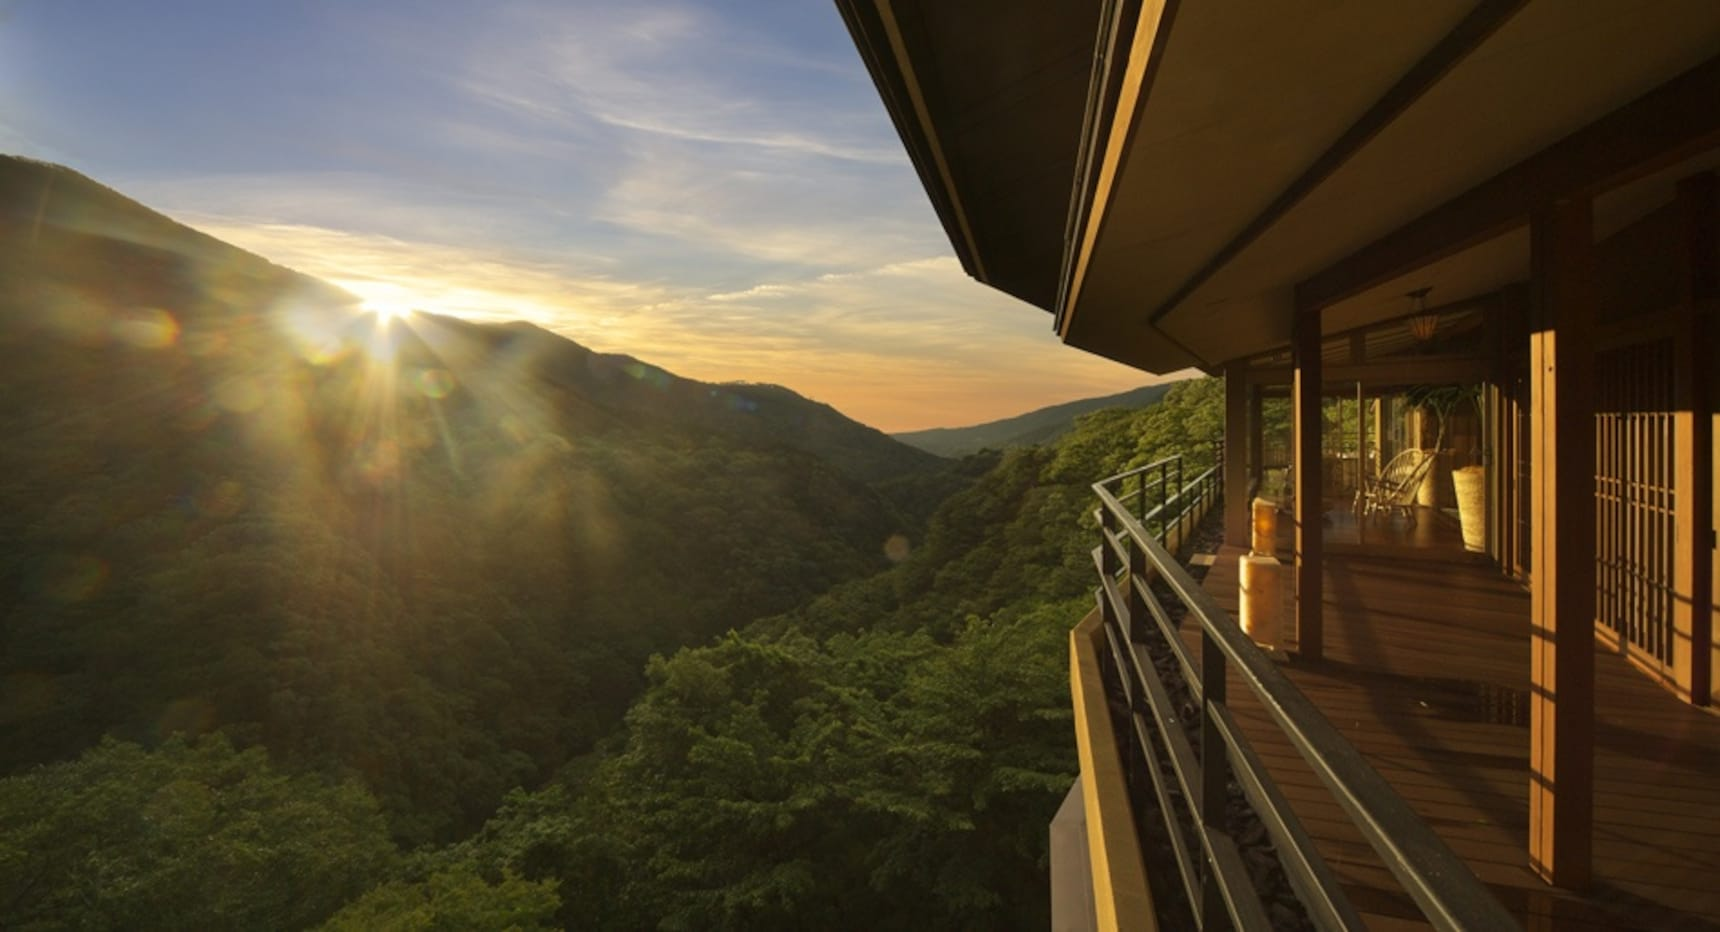 5 Reasons to Stay at Hakone Ginyu